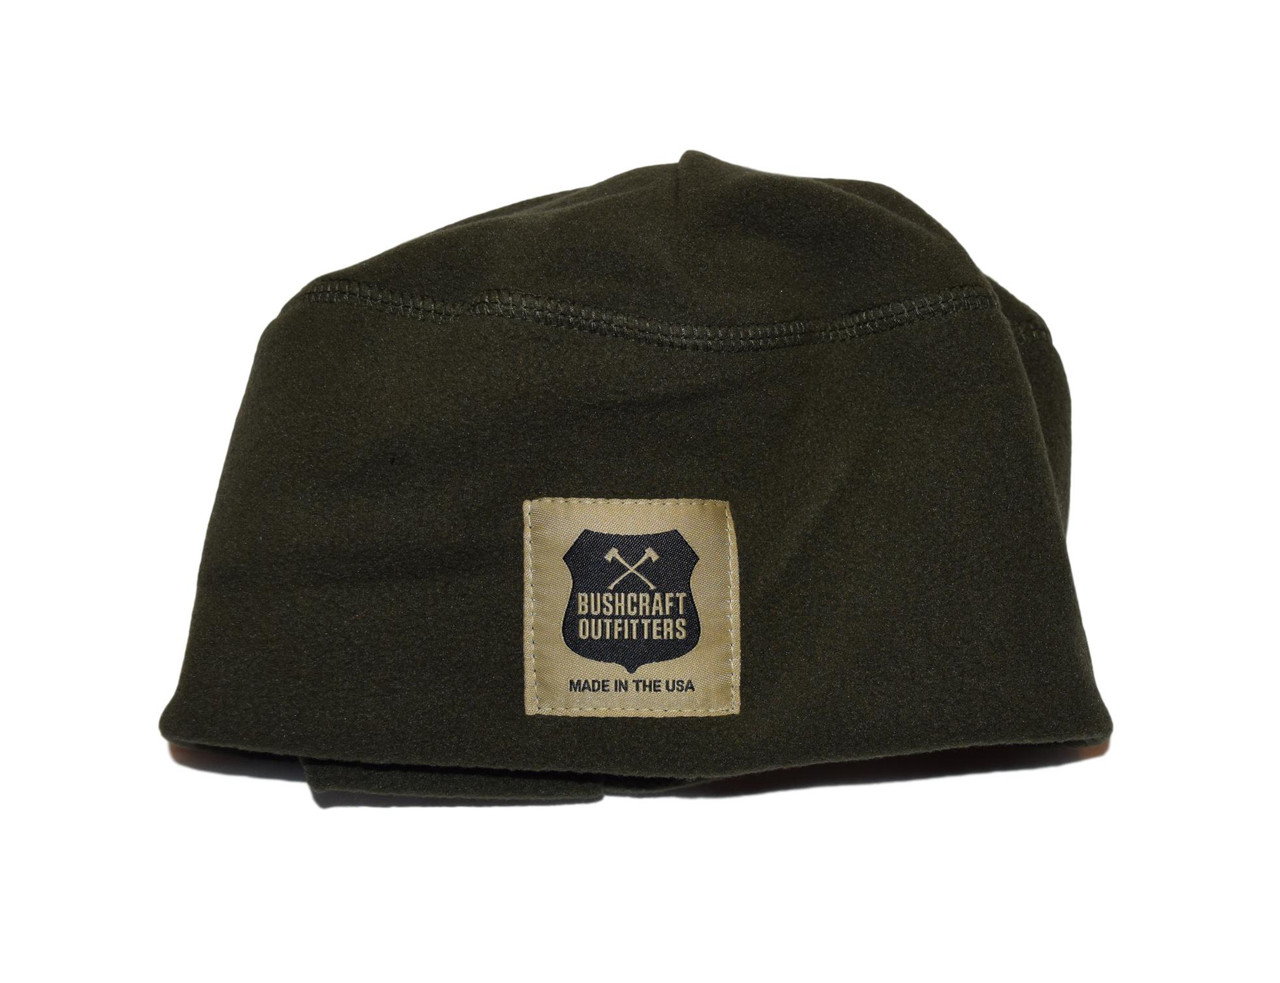 Bushcraft Outfitters Fleece Hat (OD)